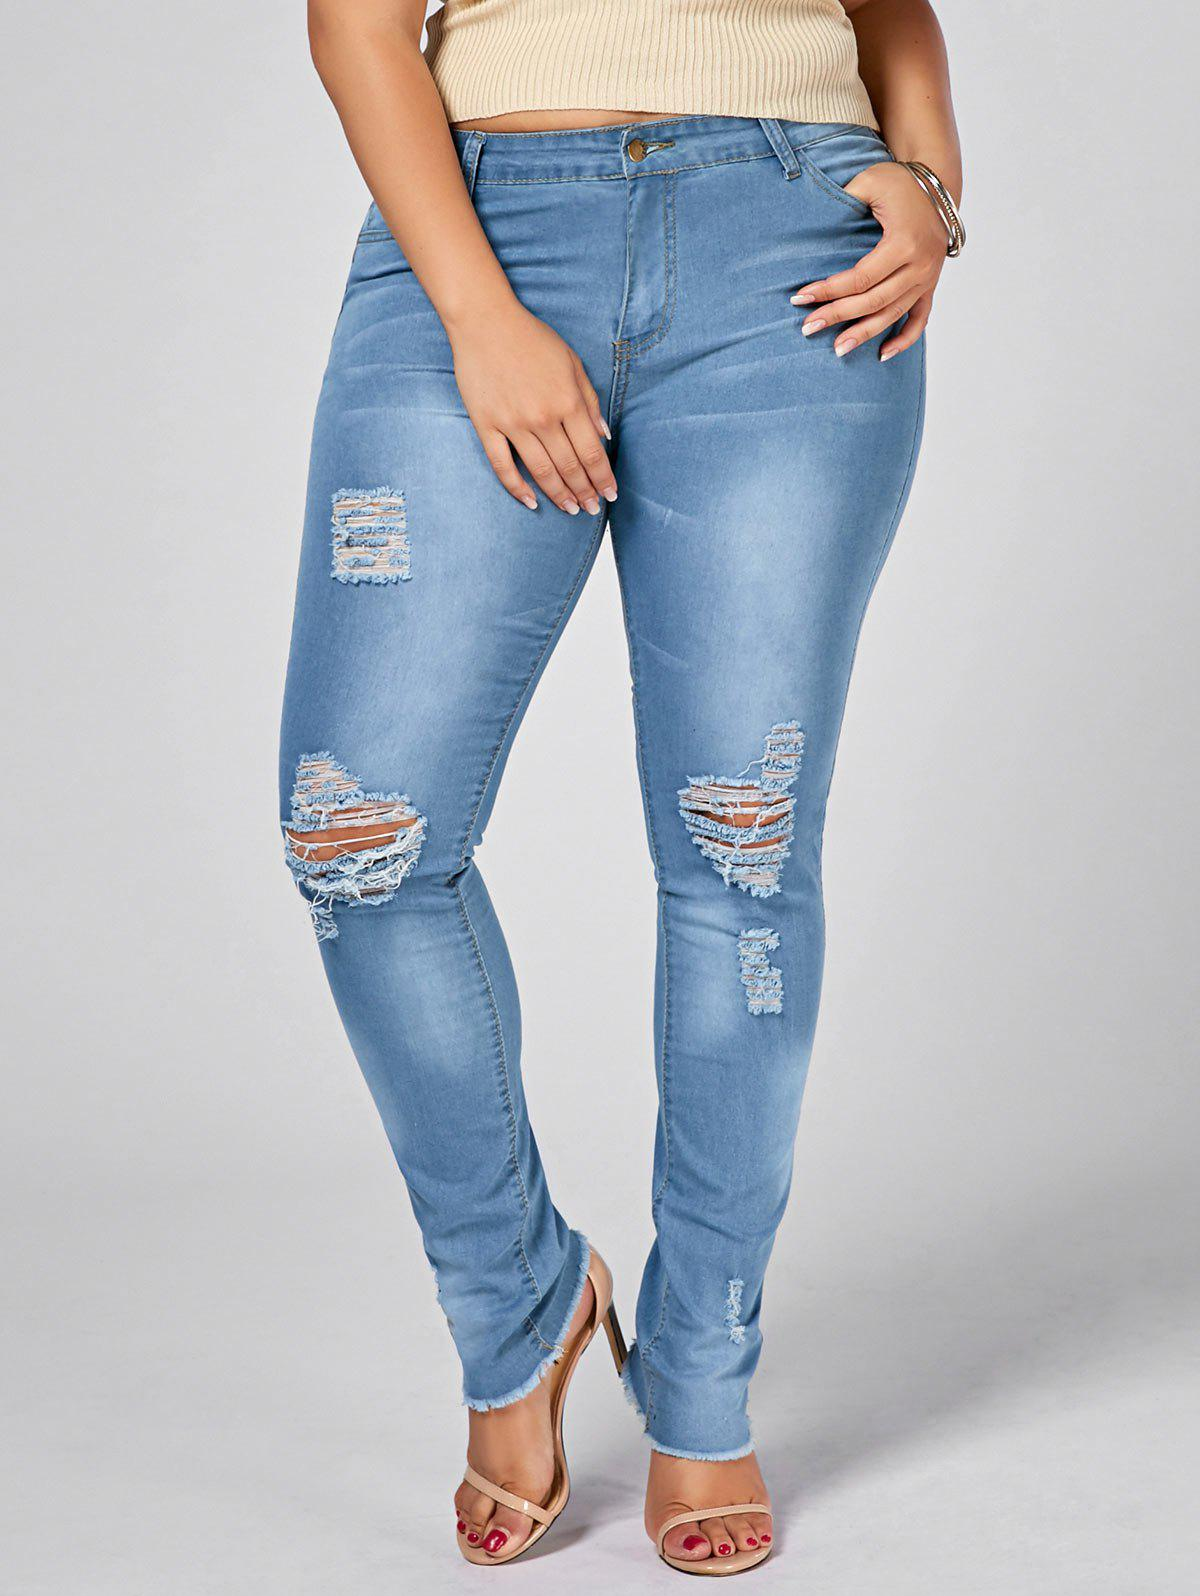 Light Wash Plus Size Ripped JeansWOMEN<br><br>Size: 3XL; Color: DENIM BLUE; Style: Fashion; Length: Ninth; Material: Jeans,Polyester; Fit Type: Skinny; Waist Type: Low; Closure Type: Zipper Fly; Pattern Type: Solid; Embellishment: Hole,Hollow Out; Pant Style: Pencil Pants; Weight: 0.4500kg; Package Contents: 1 x Jeans;